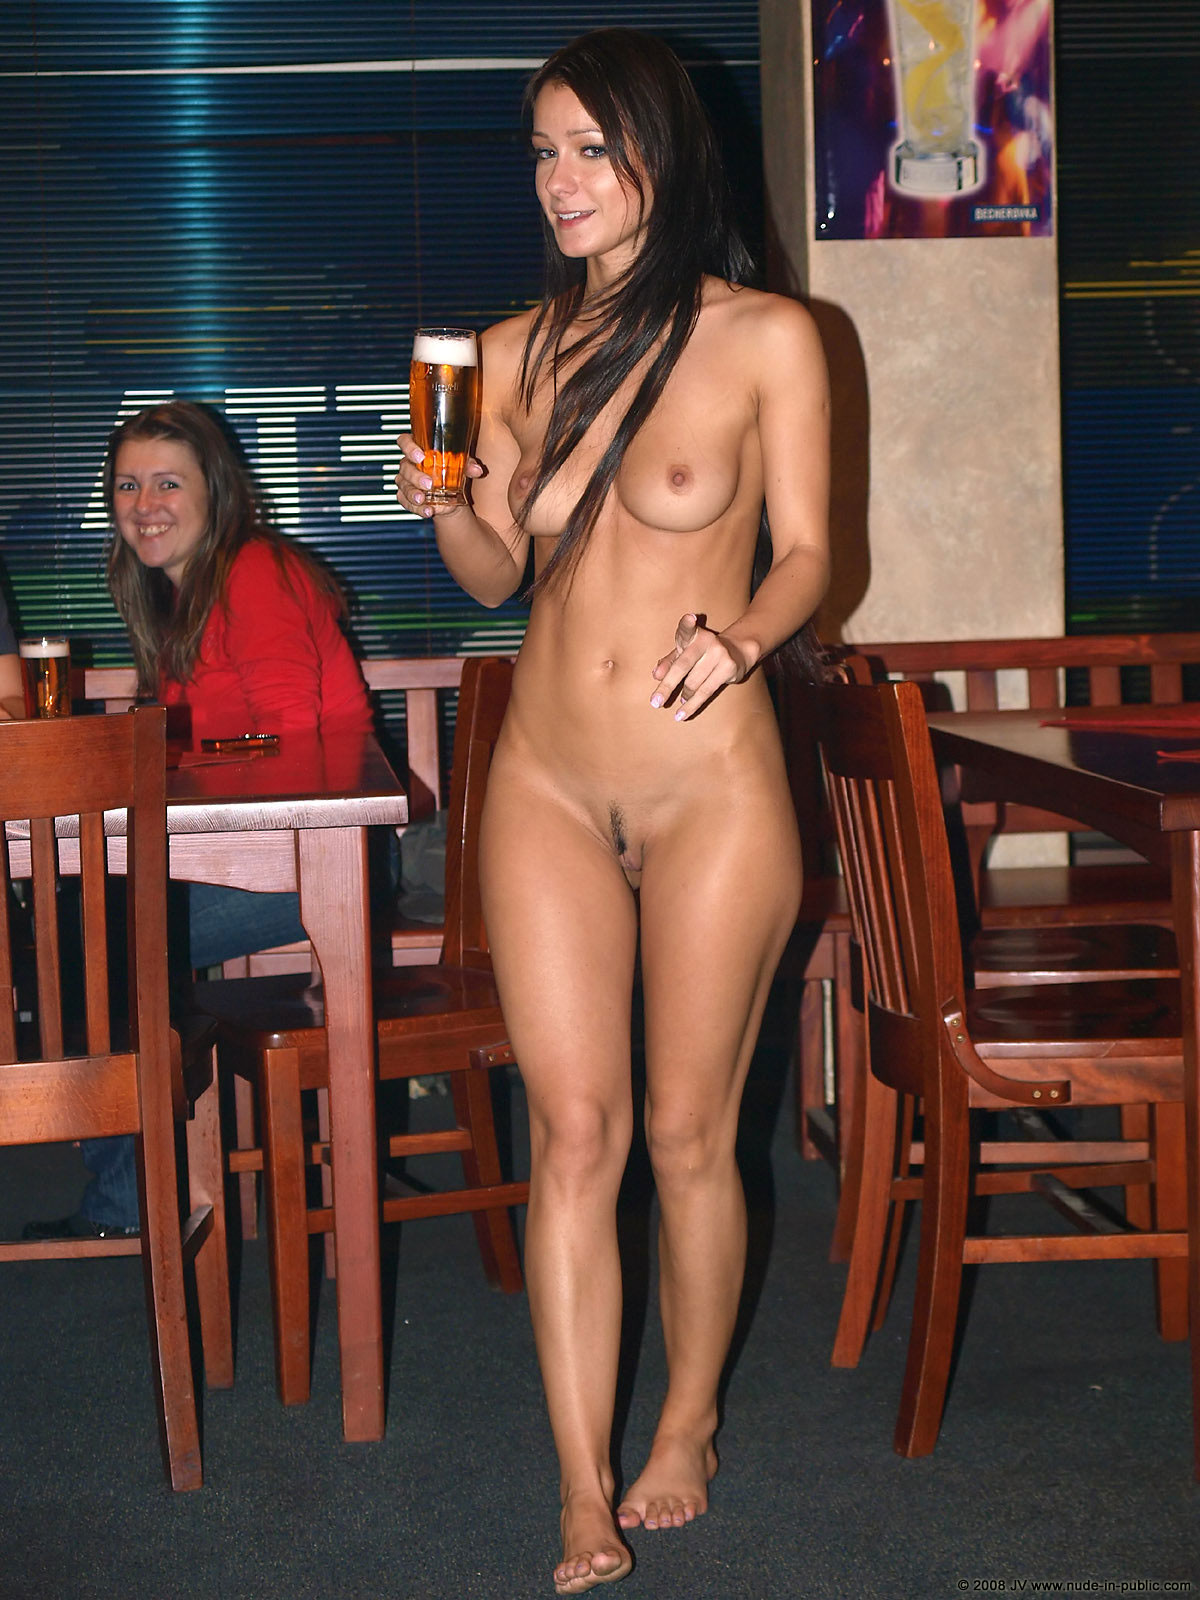 naked-girls-in-public-mix-vol5-01